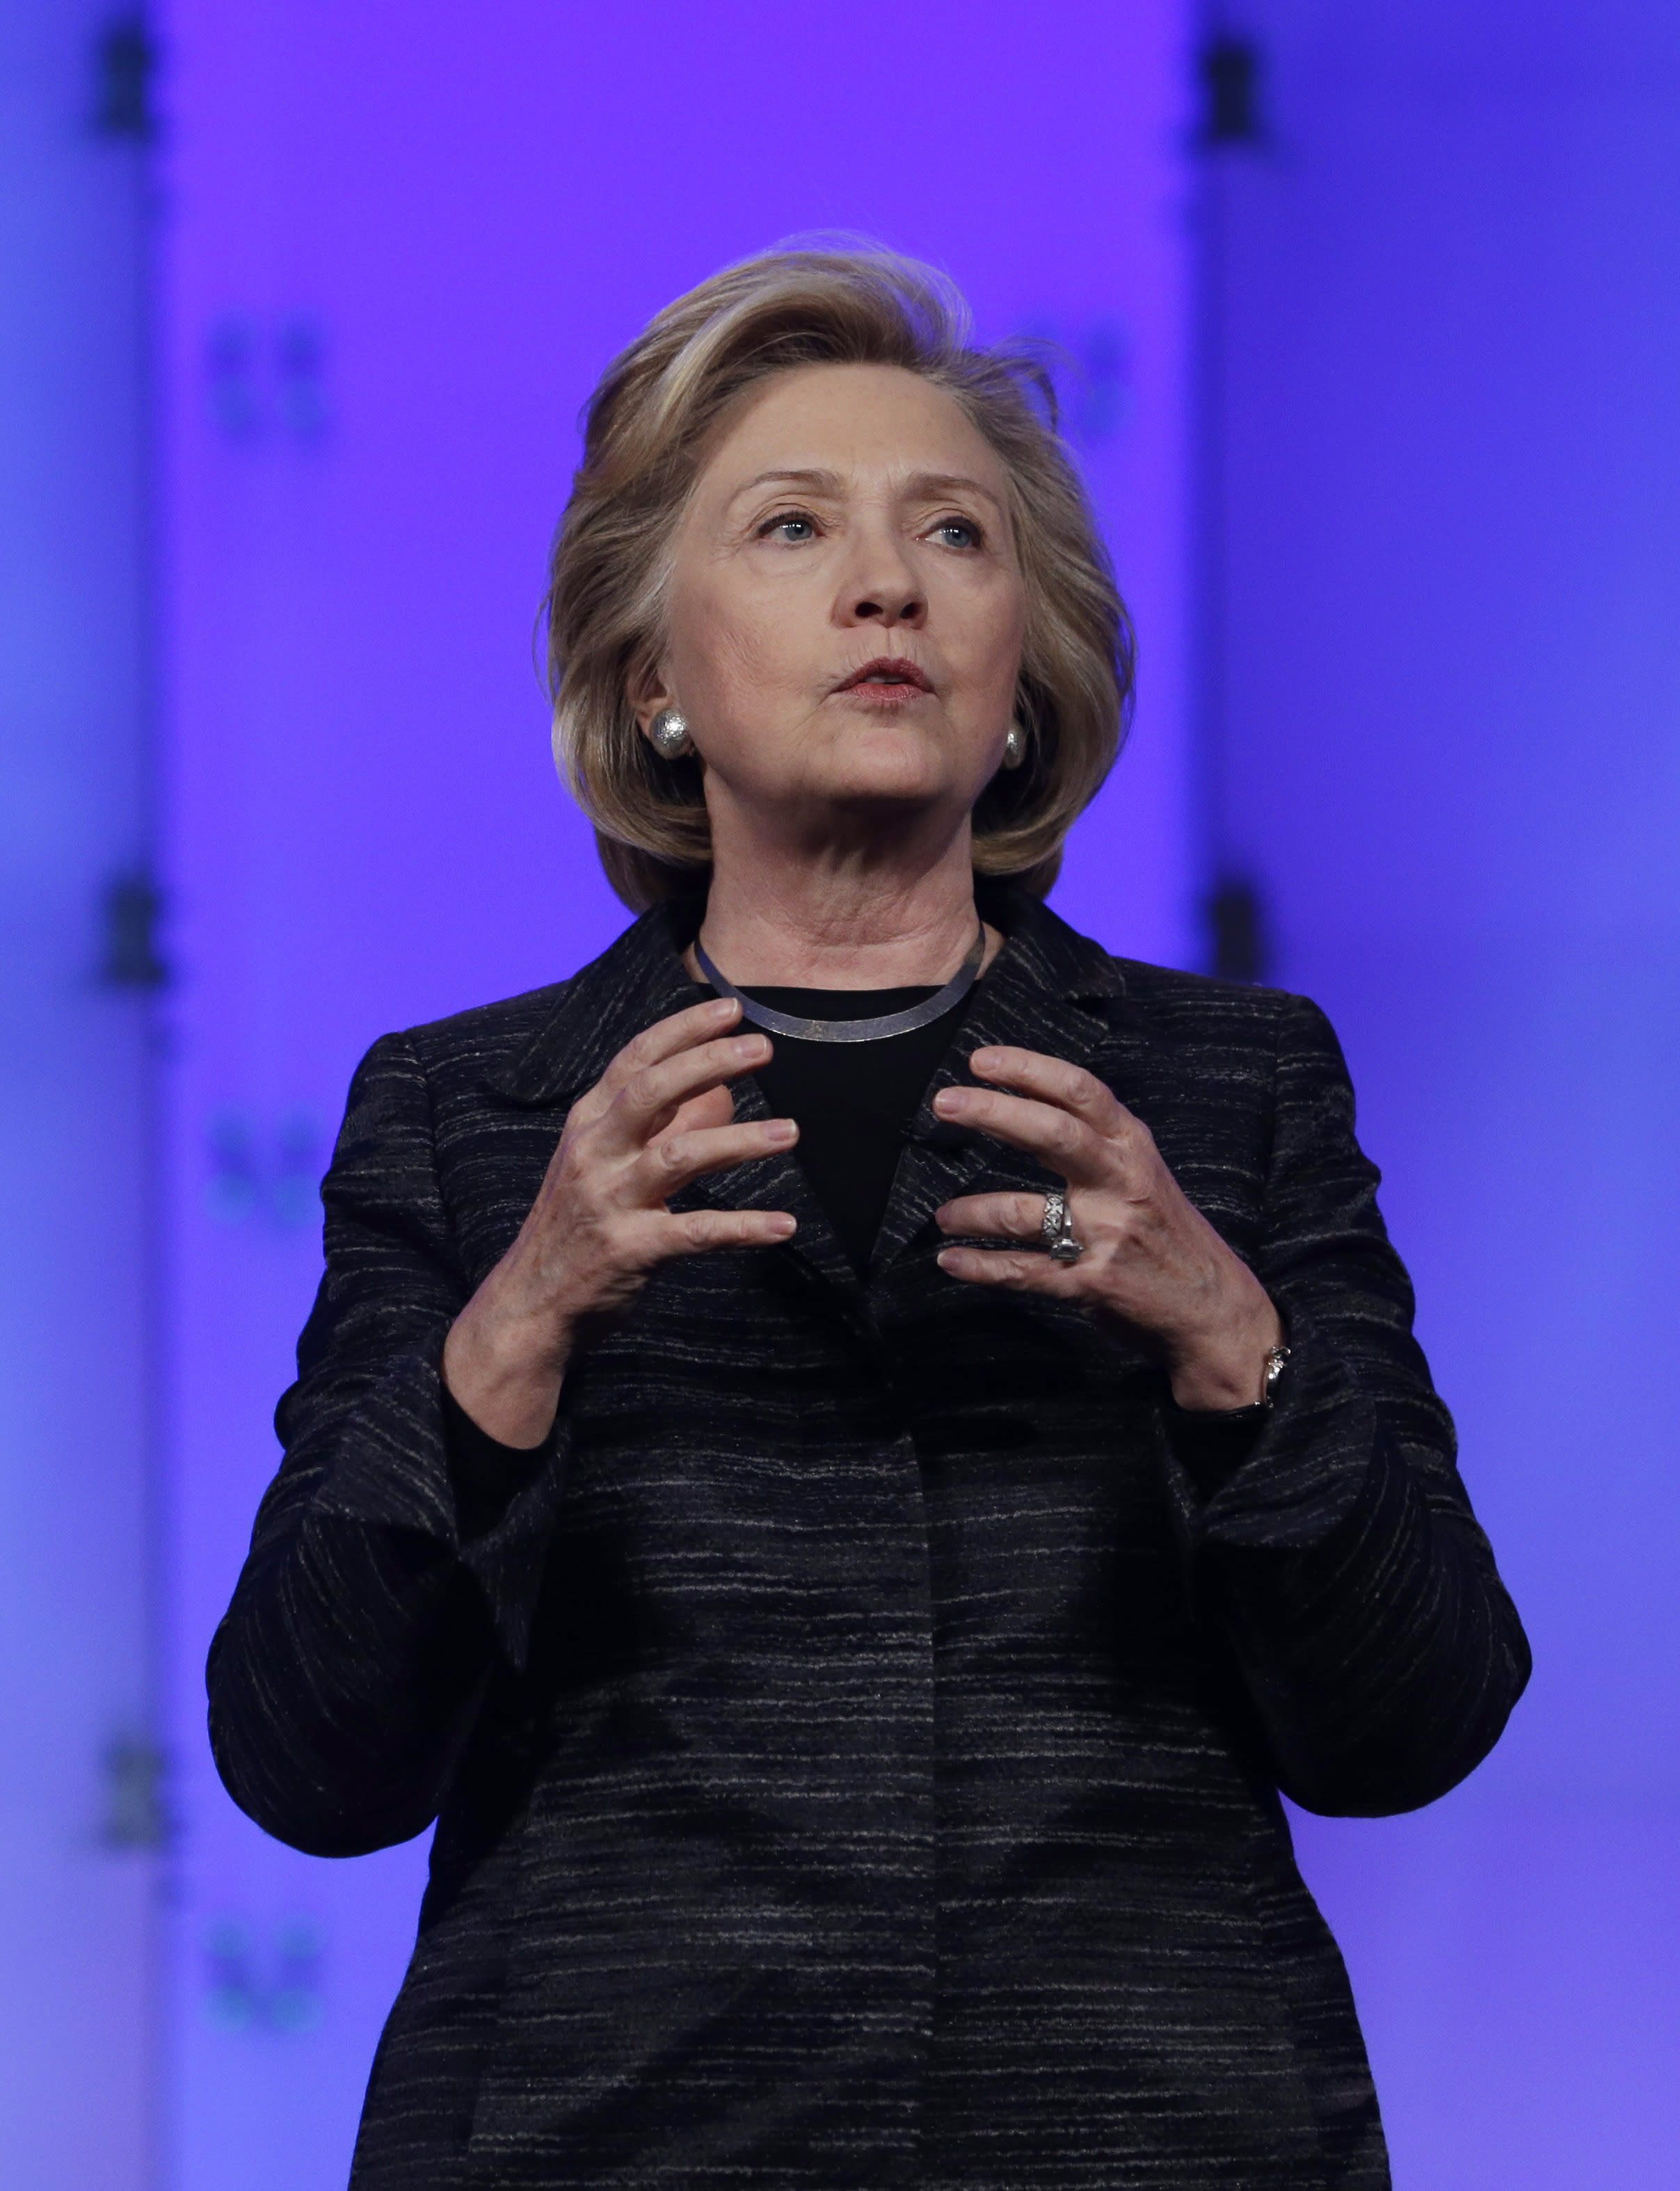 Hillary focusing on women to re-brand for 2016?